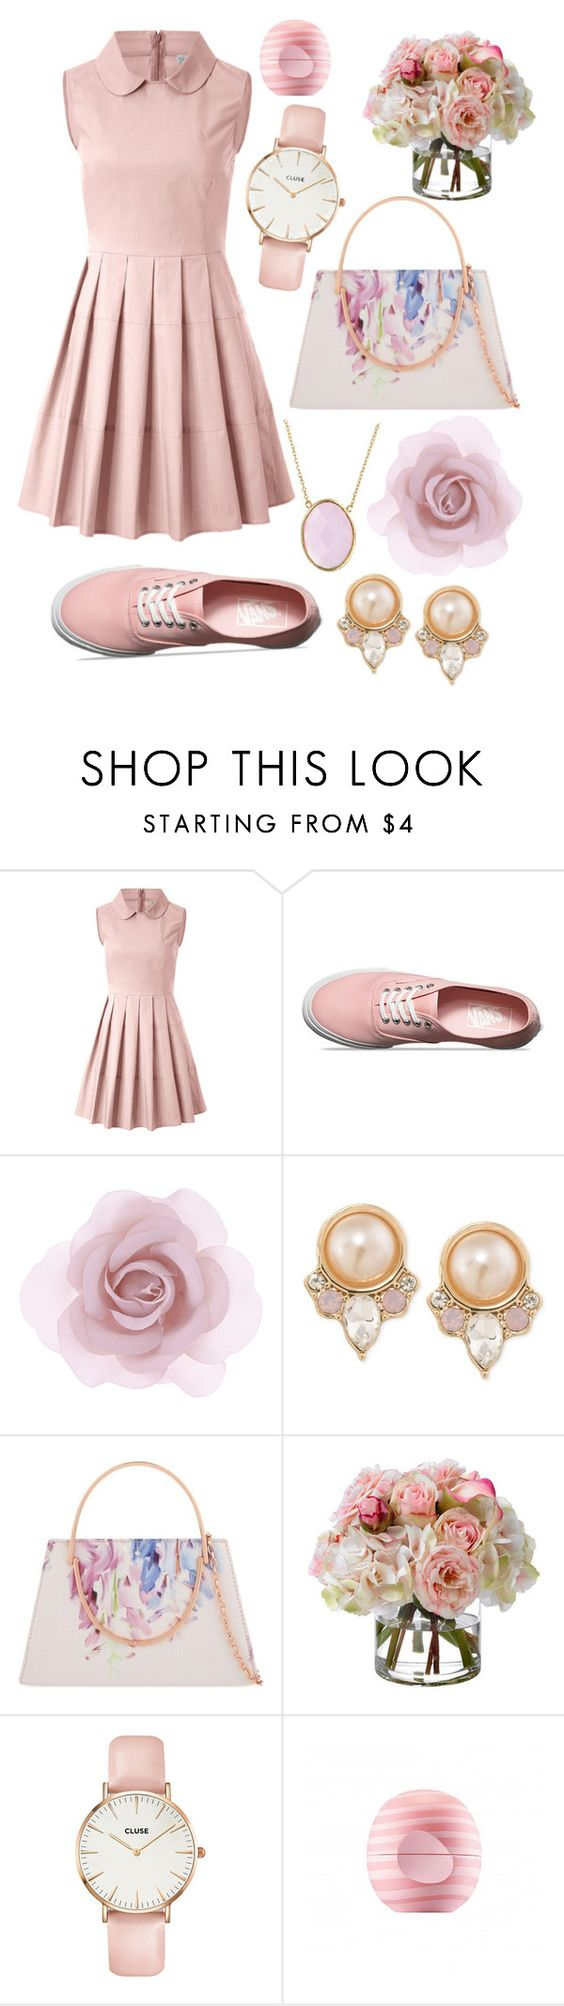 """〰welcoming Spring"" by picking-petals ❤ liked on Polyvore featuring RED Valentino, Vans, Accessorize, Carolee, Ted Baker, Diane James, CLUSE, Eos and Bling Jewelry"